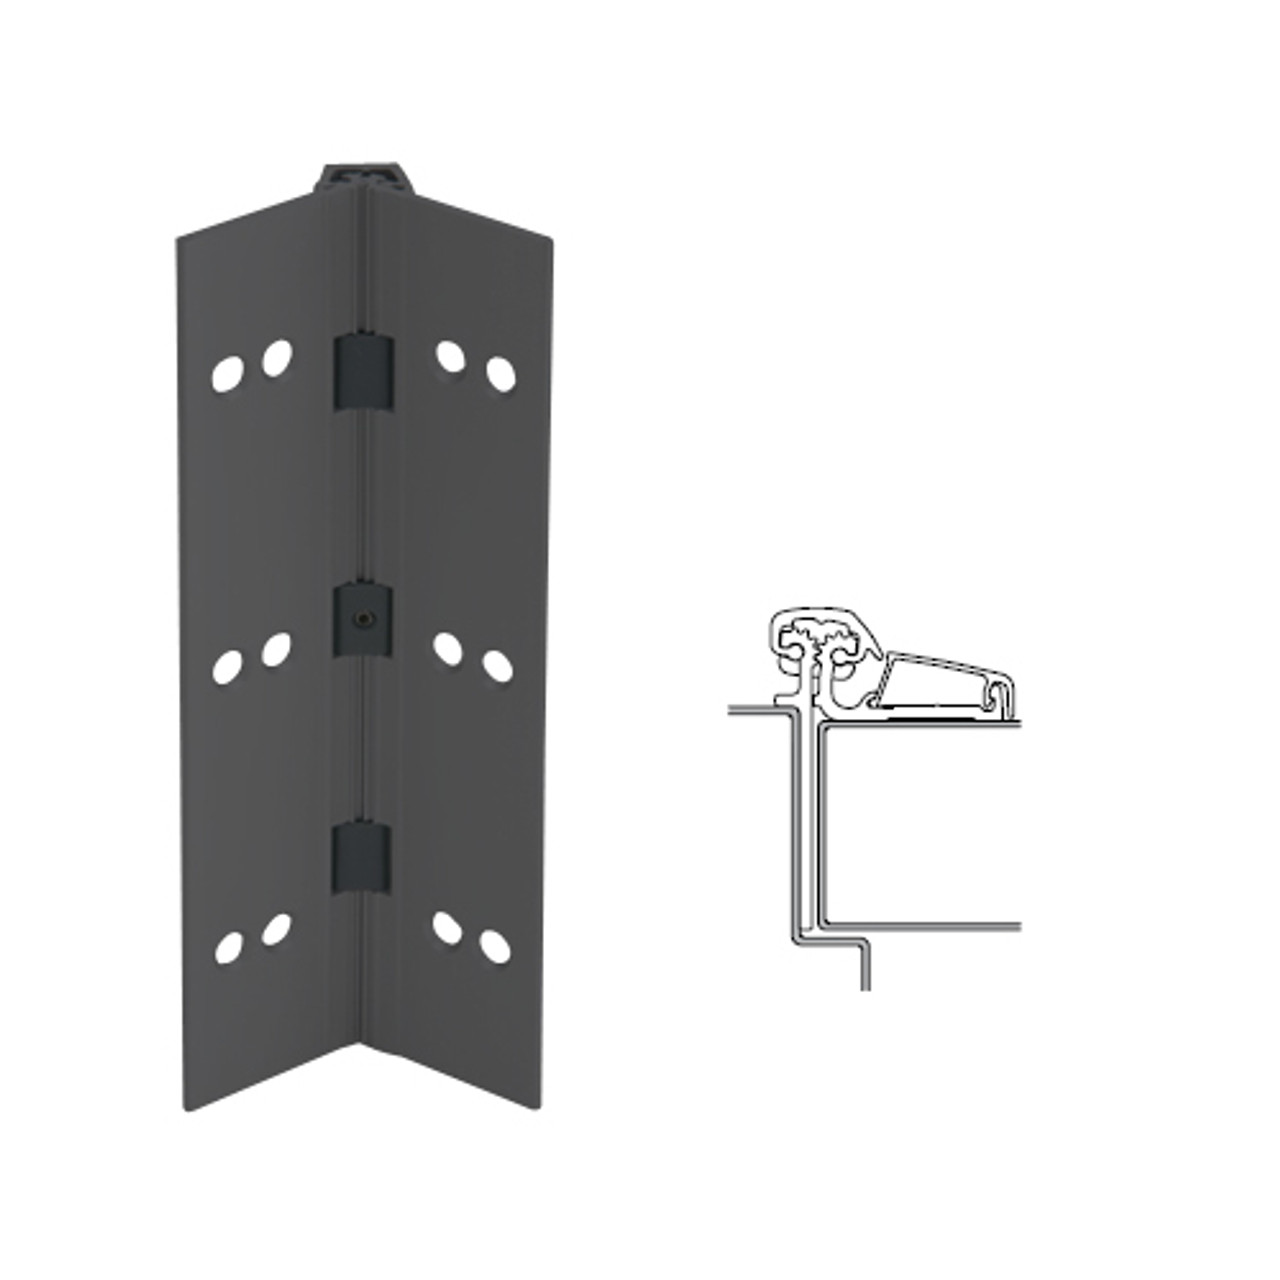 054XY-315AN-120-SECWDWD IVES Adjustable Half Surface Continuous Geared Hinges with Security Screws - Hex Pin Drive in Anodized Black